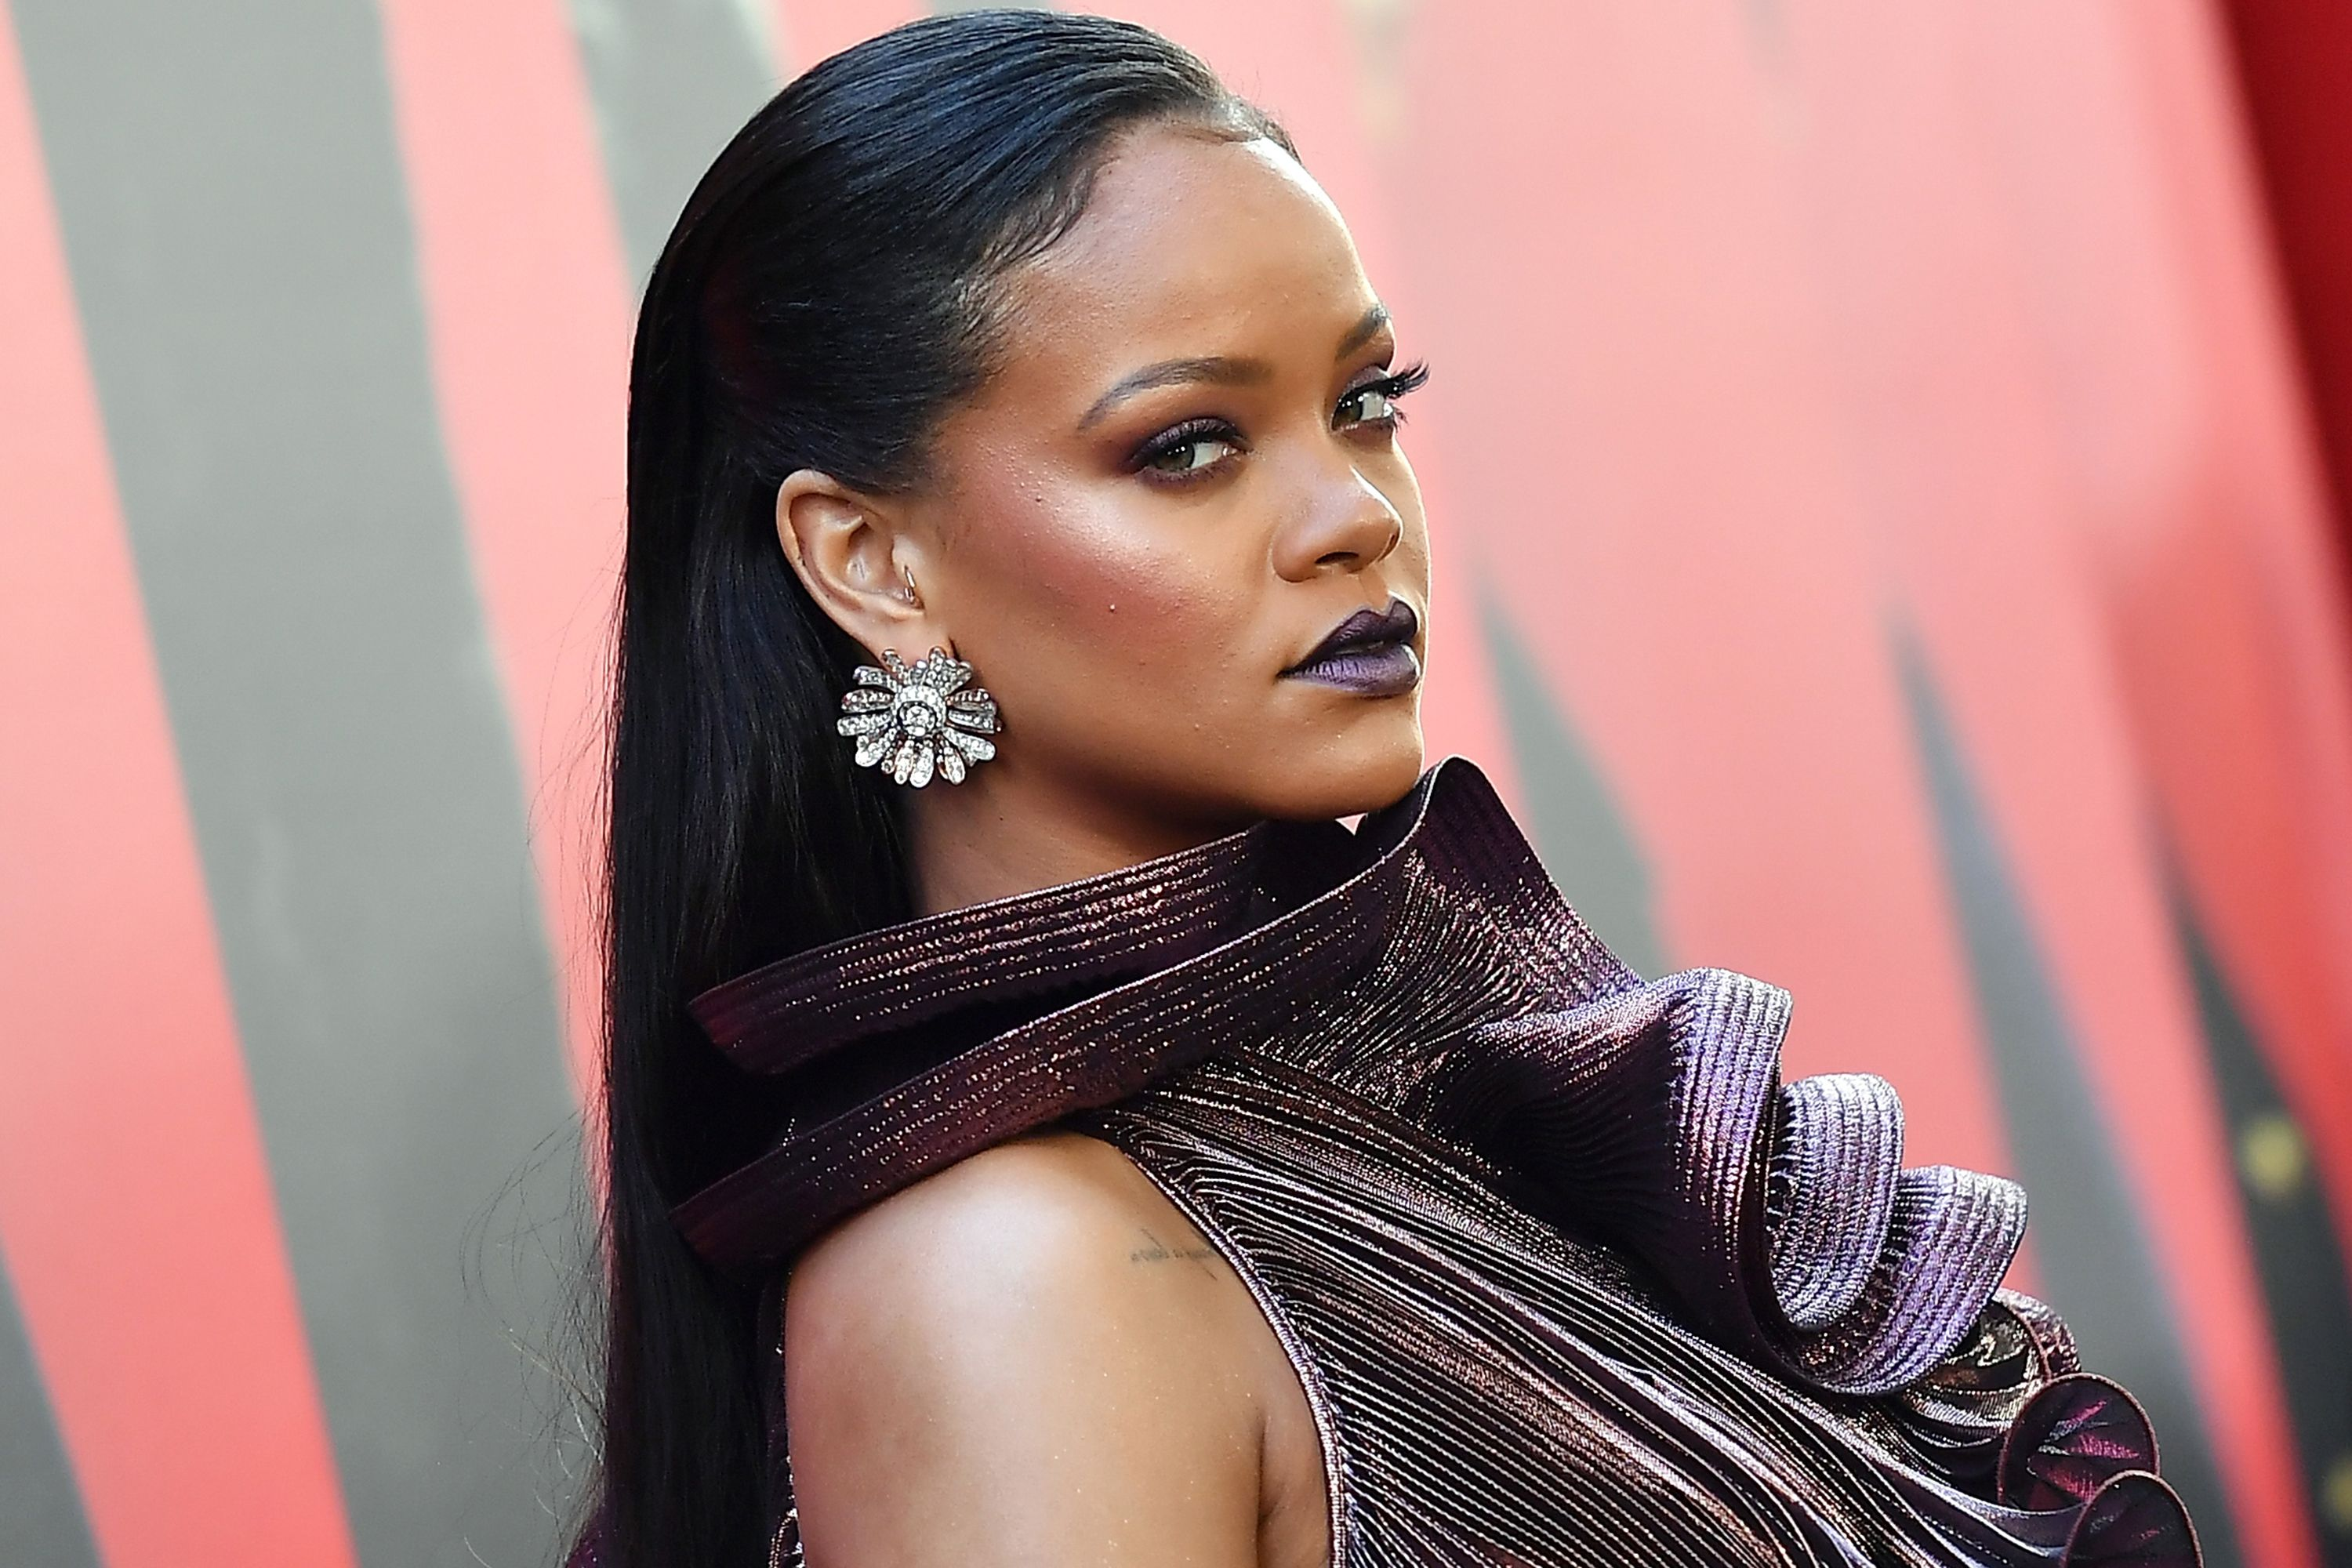 'Rihanna's New book revealed everything about singer and 1,000 photographs